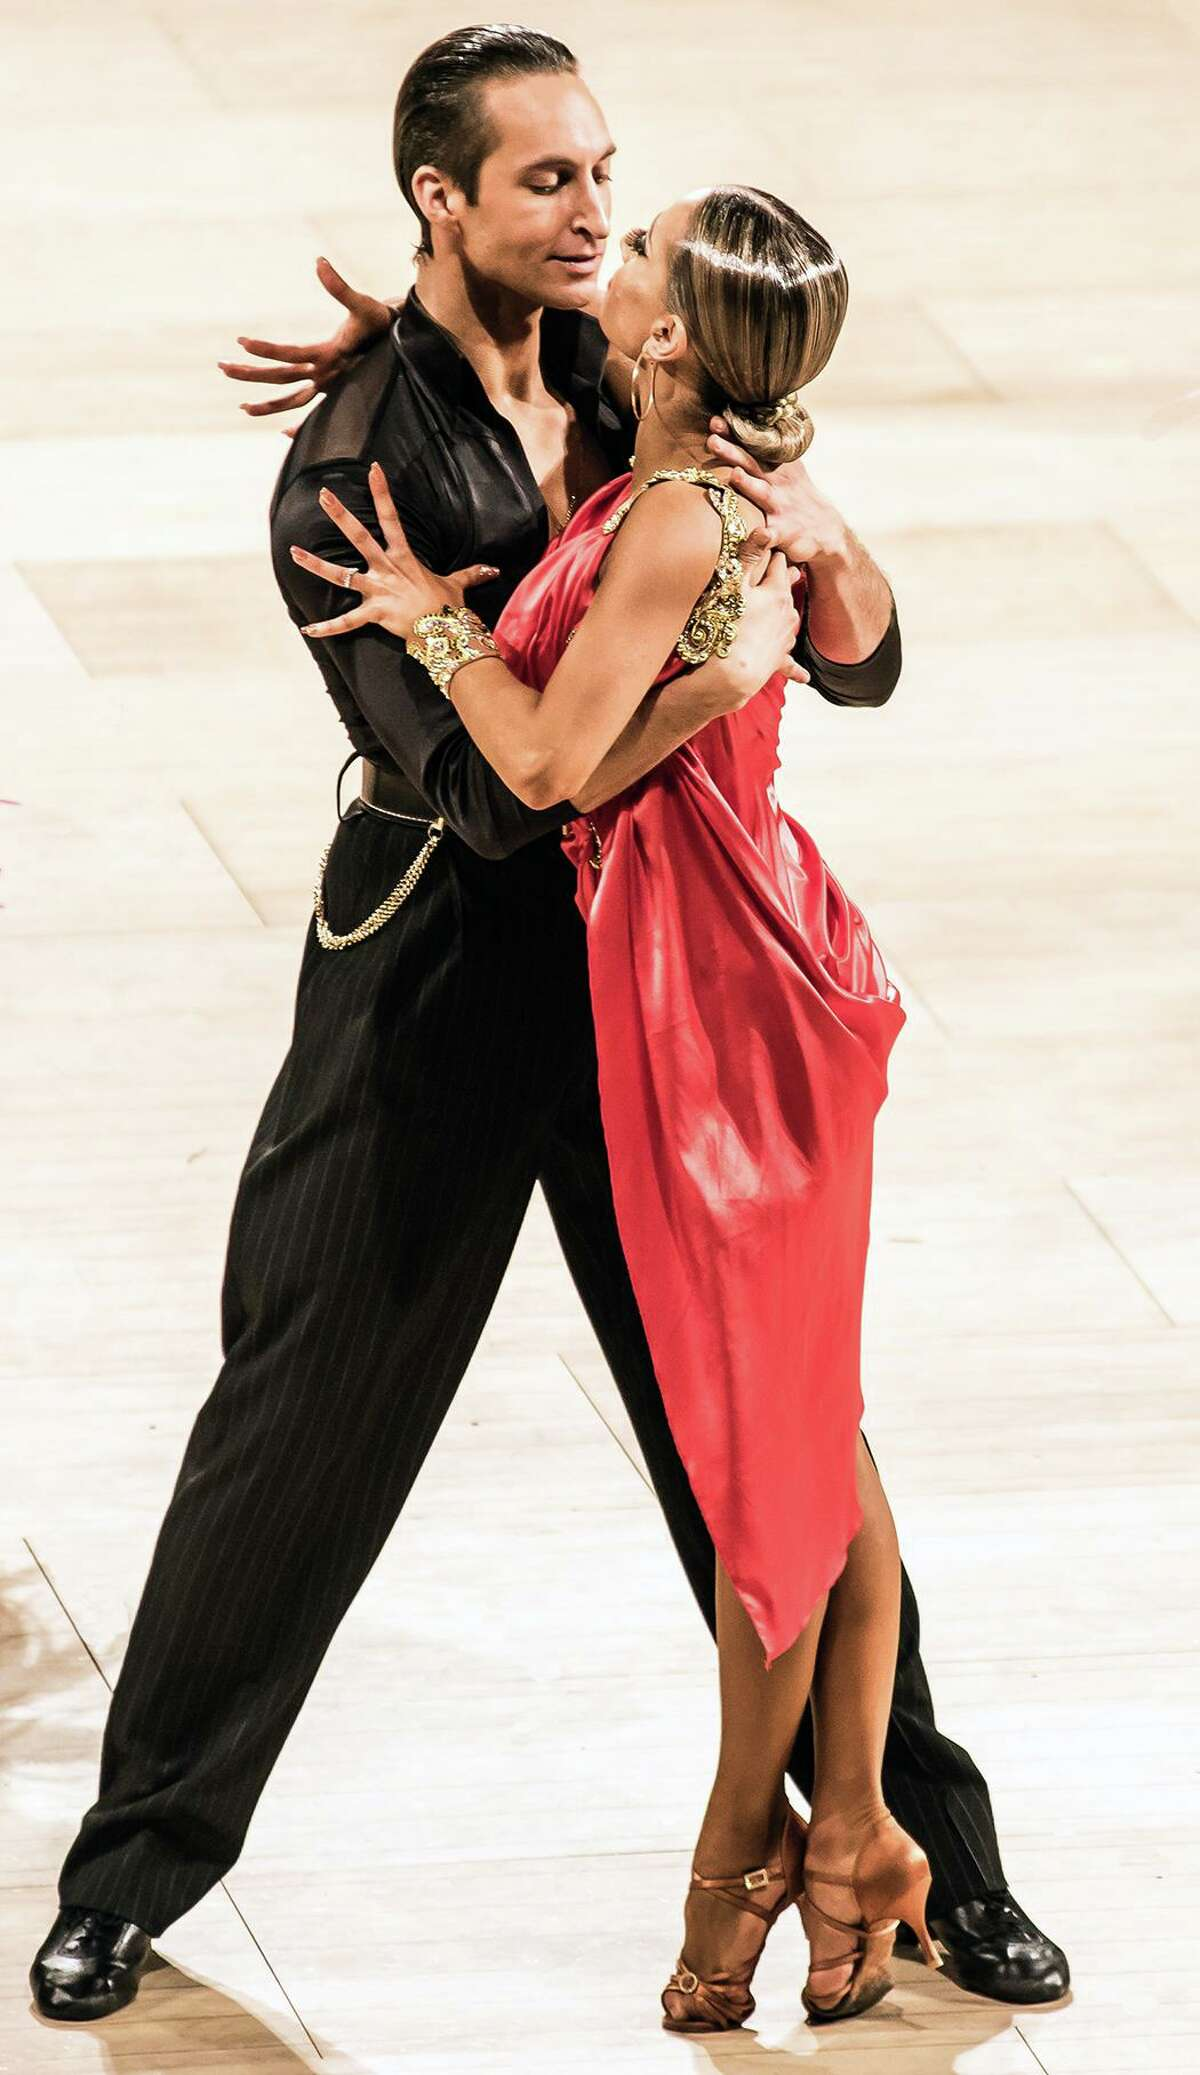 Pasha Stepanchuk and Gabrielle Sabler will perform a Latin ballroom routine in Bridgeport on Nov. 30.